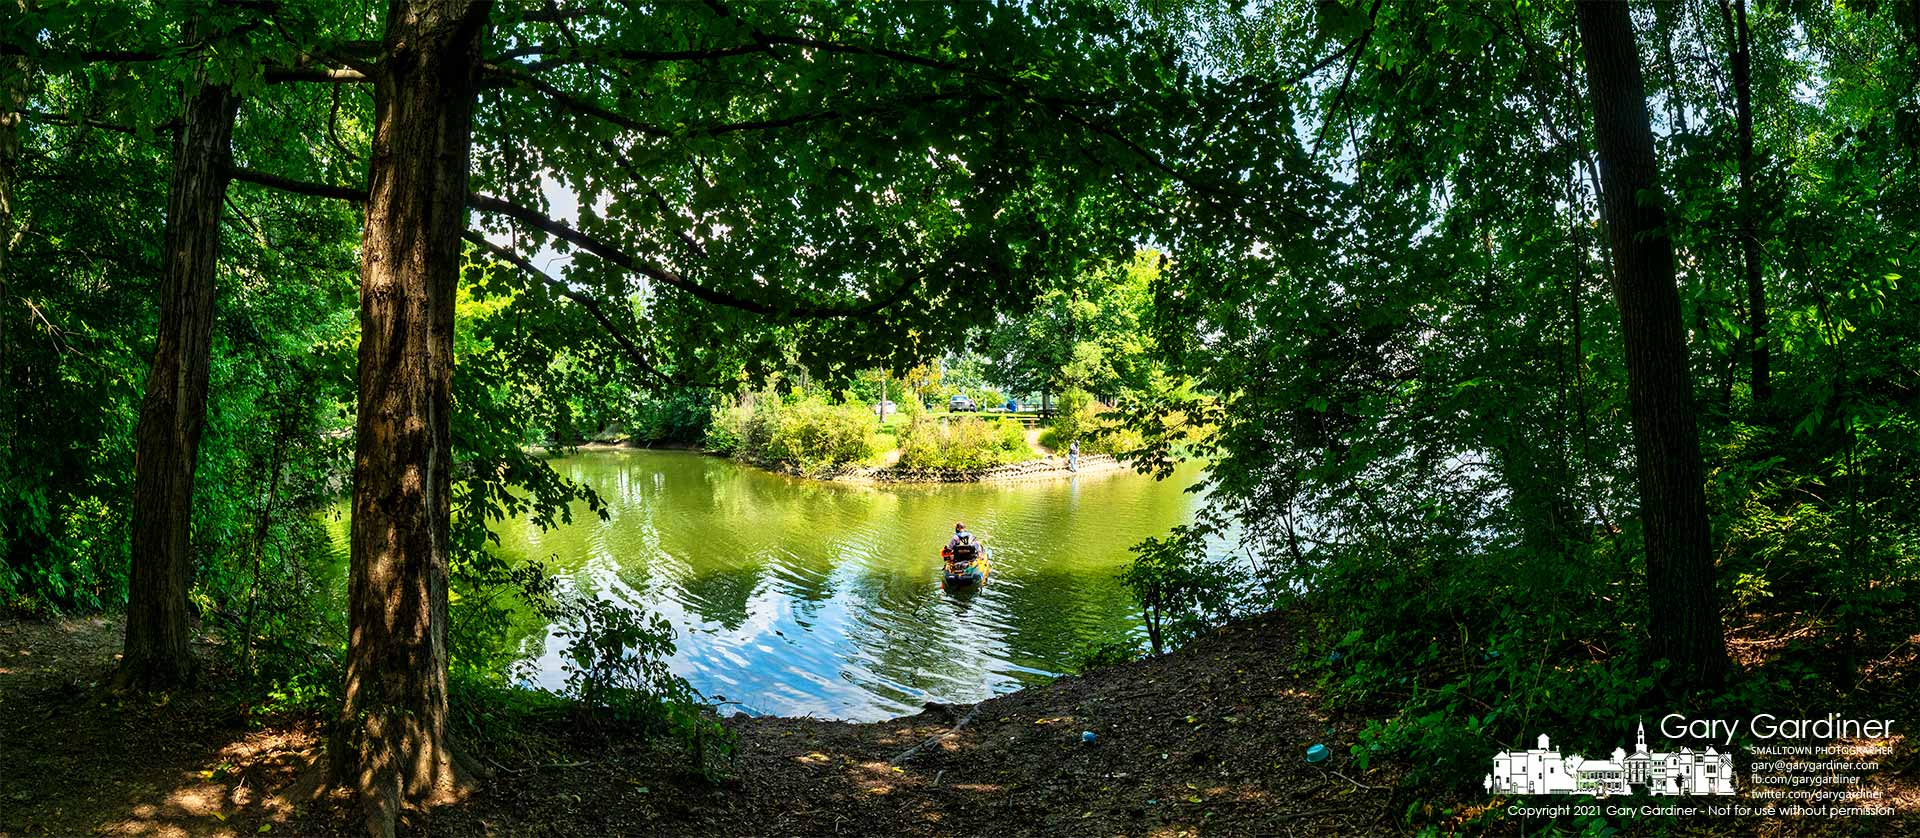 A fisherman steadies his kayak beside the shadows from the tree-lined shoreline in shallow waters on the edge of Hoover Reservoir. My Final Photo for Aug. 20, 2021.